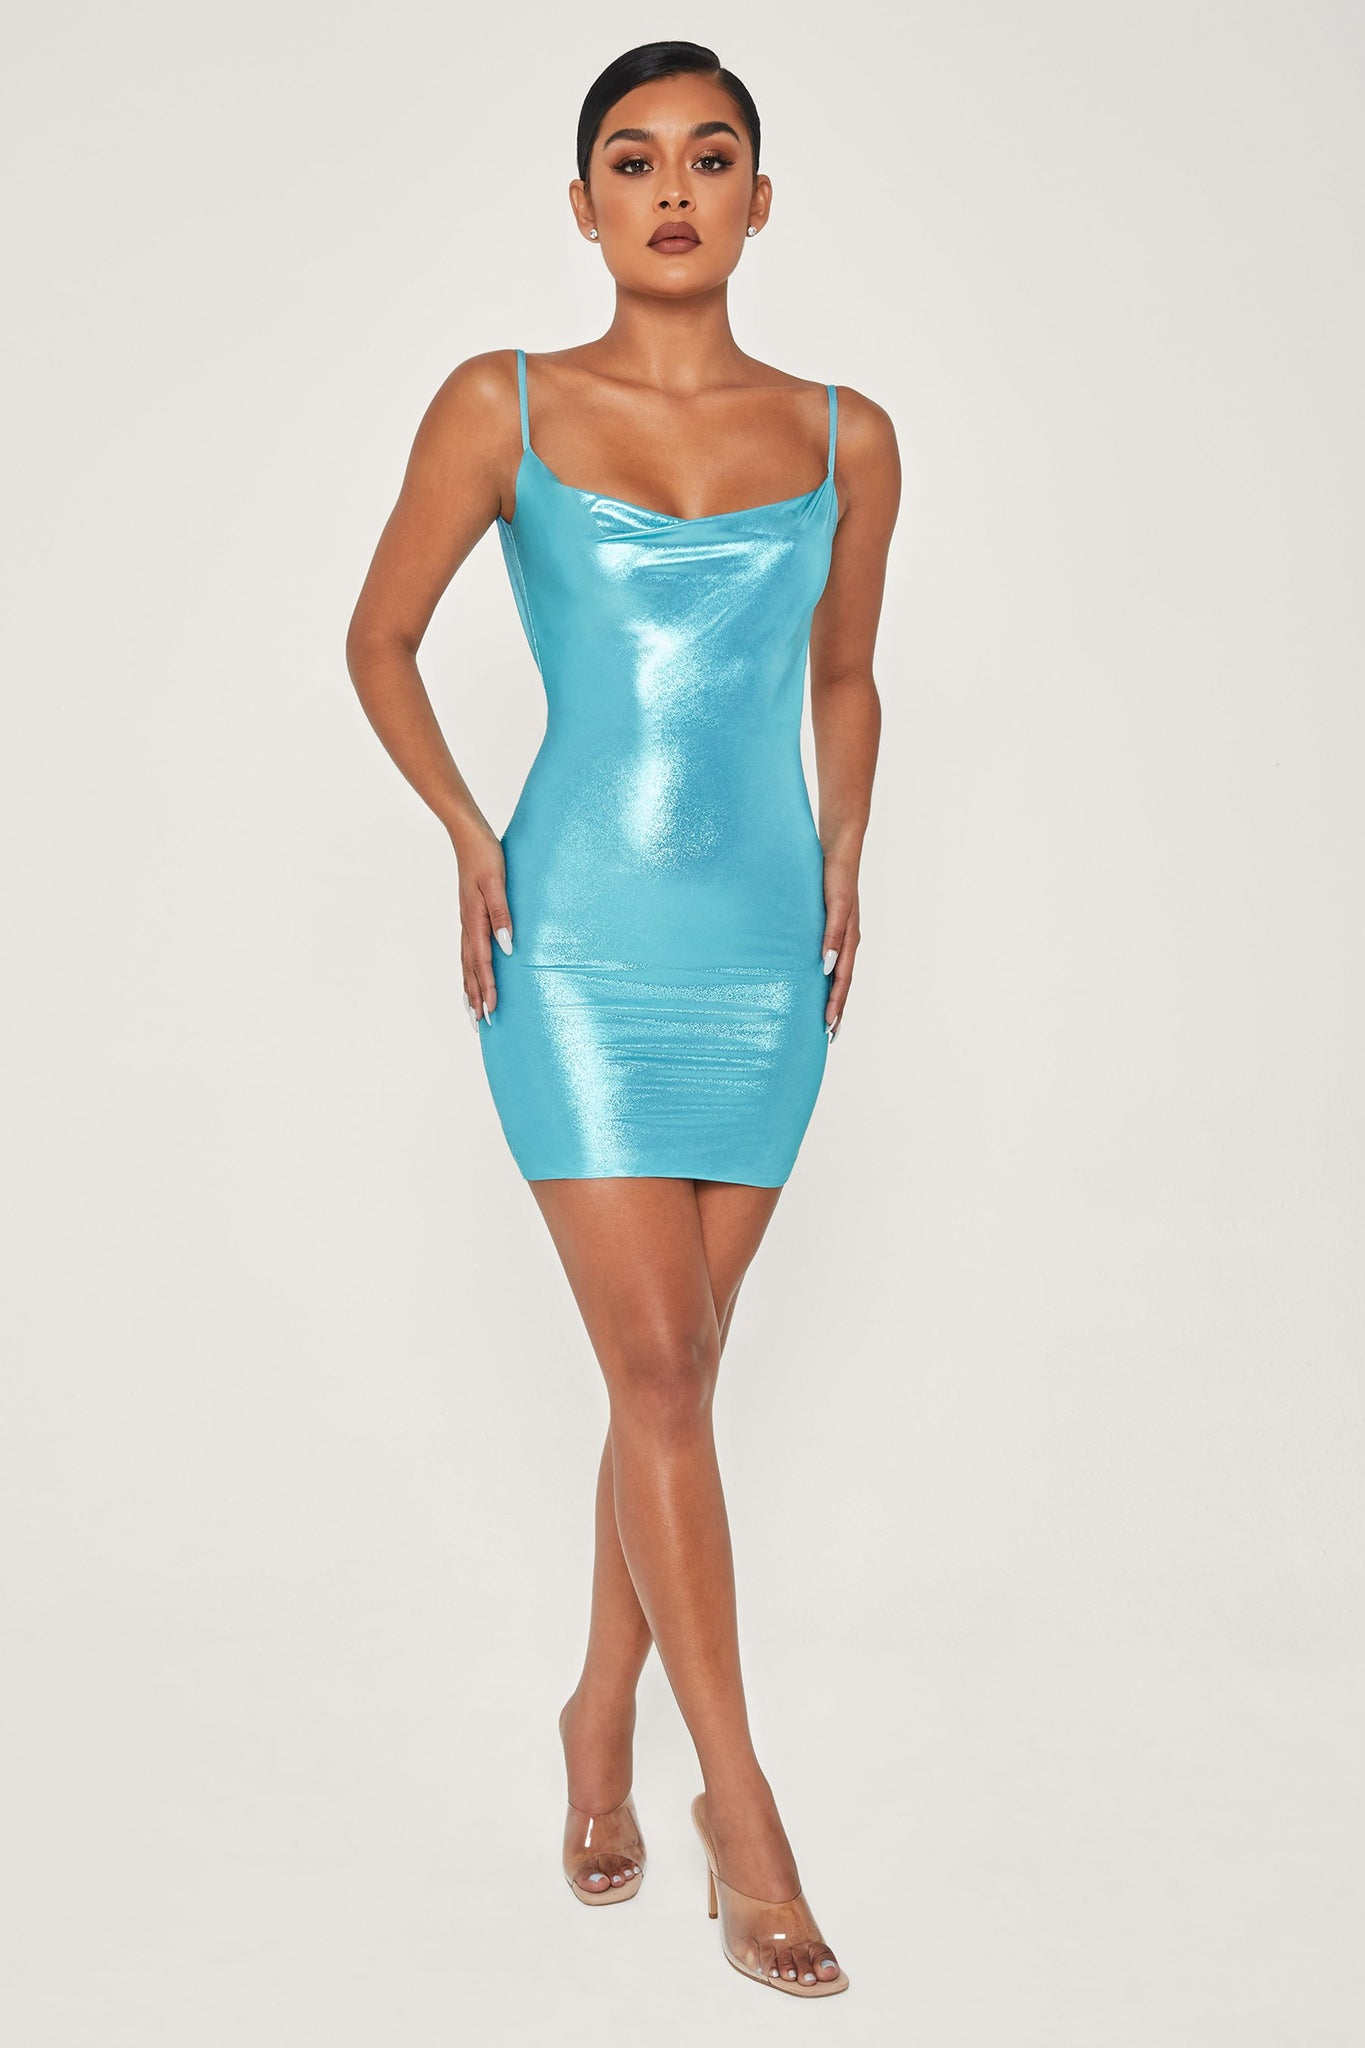 Kalia Cowl Neck Mini Dress - Turquoise - MESHKI